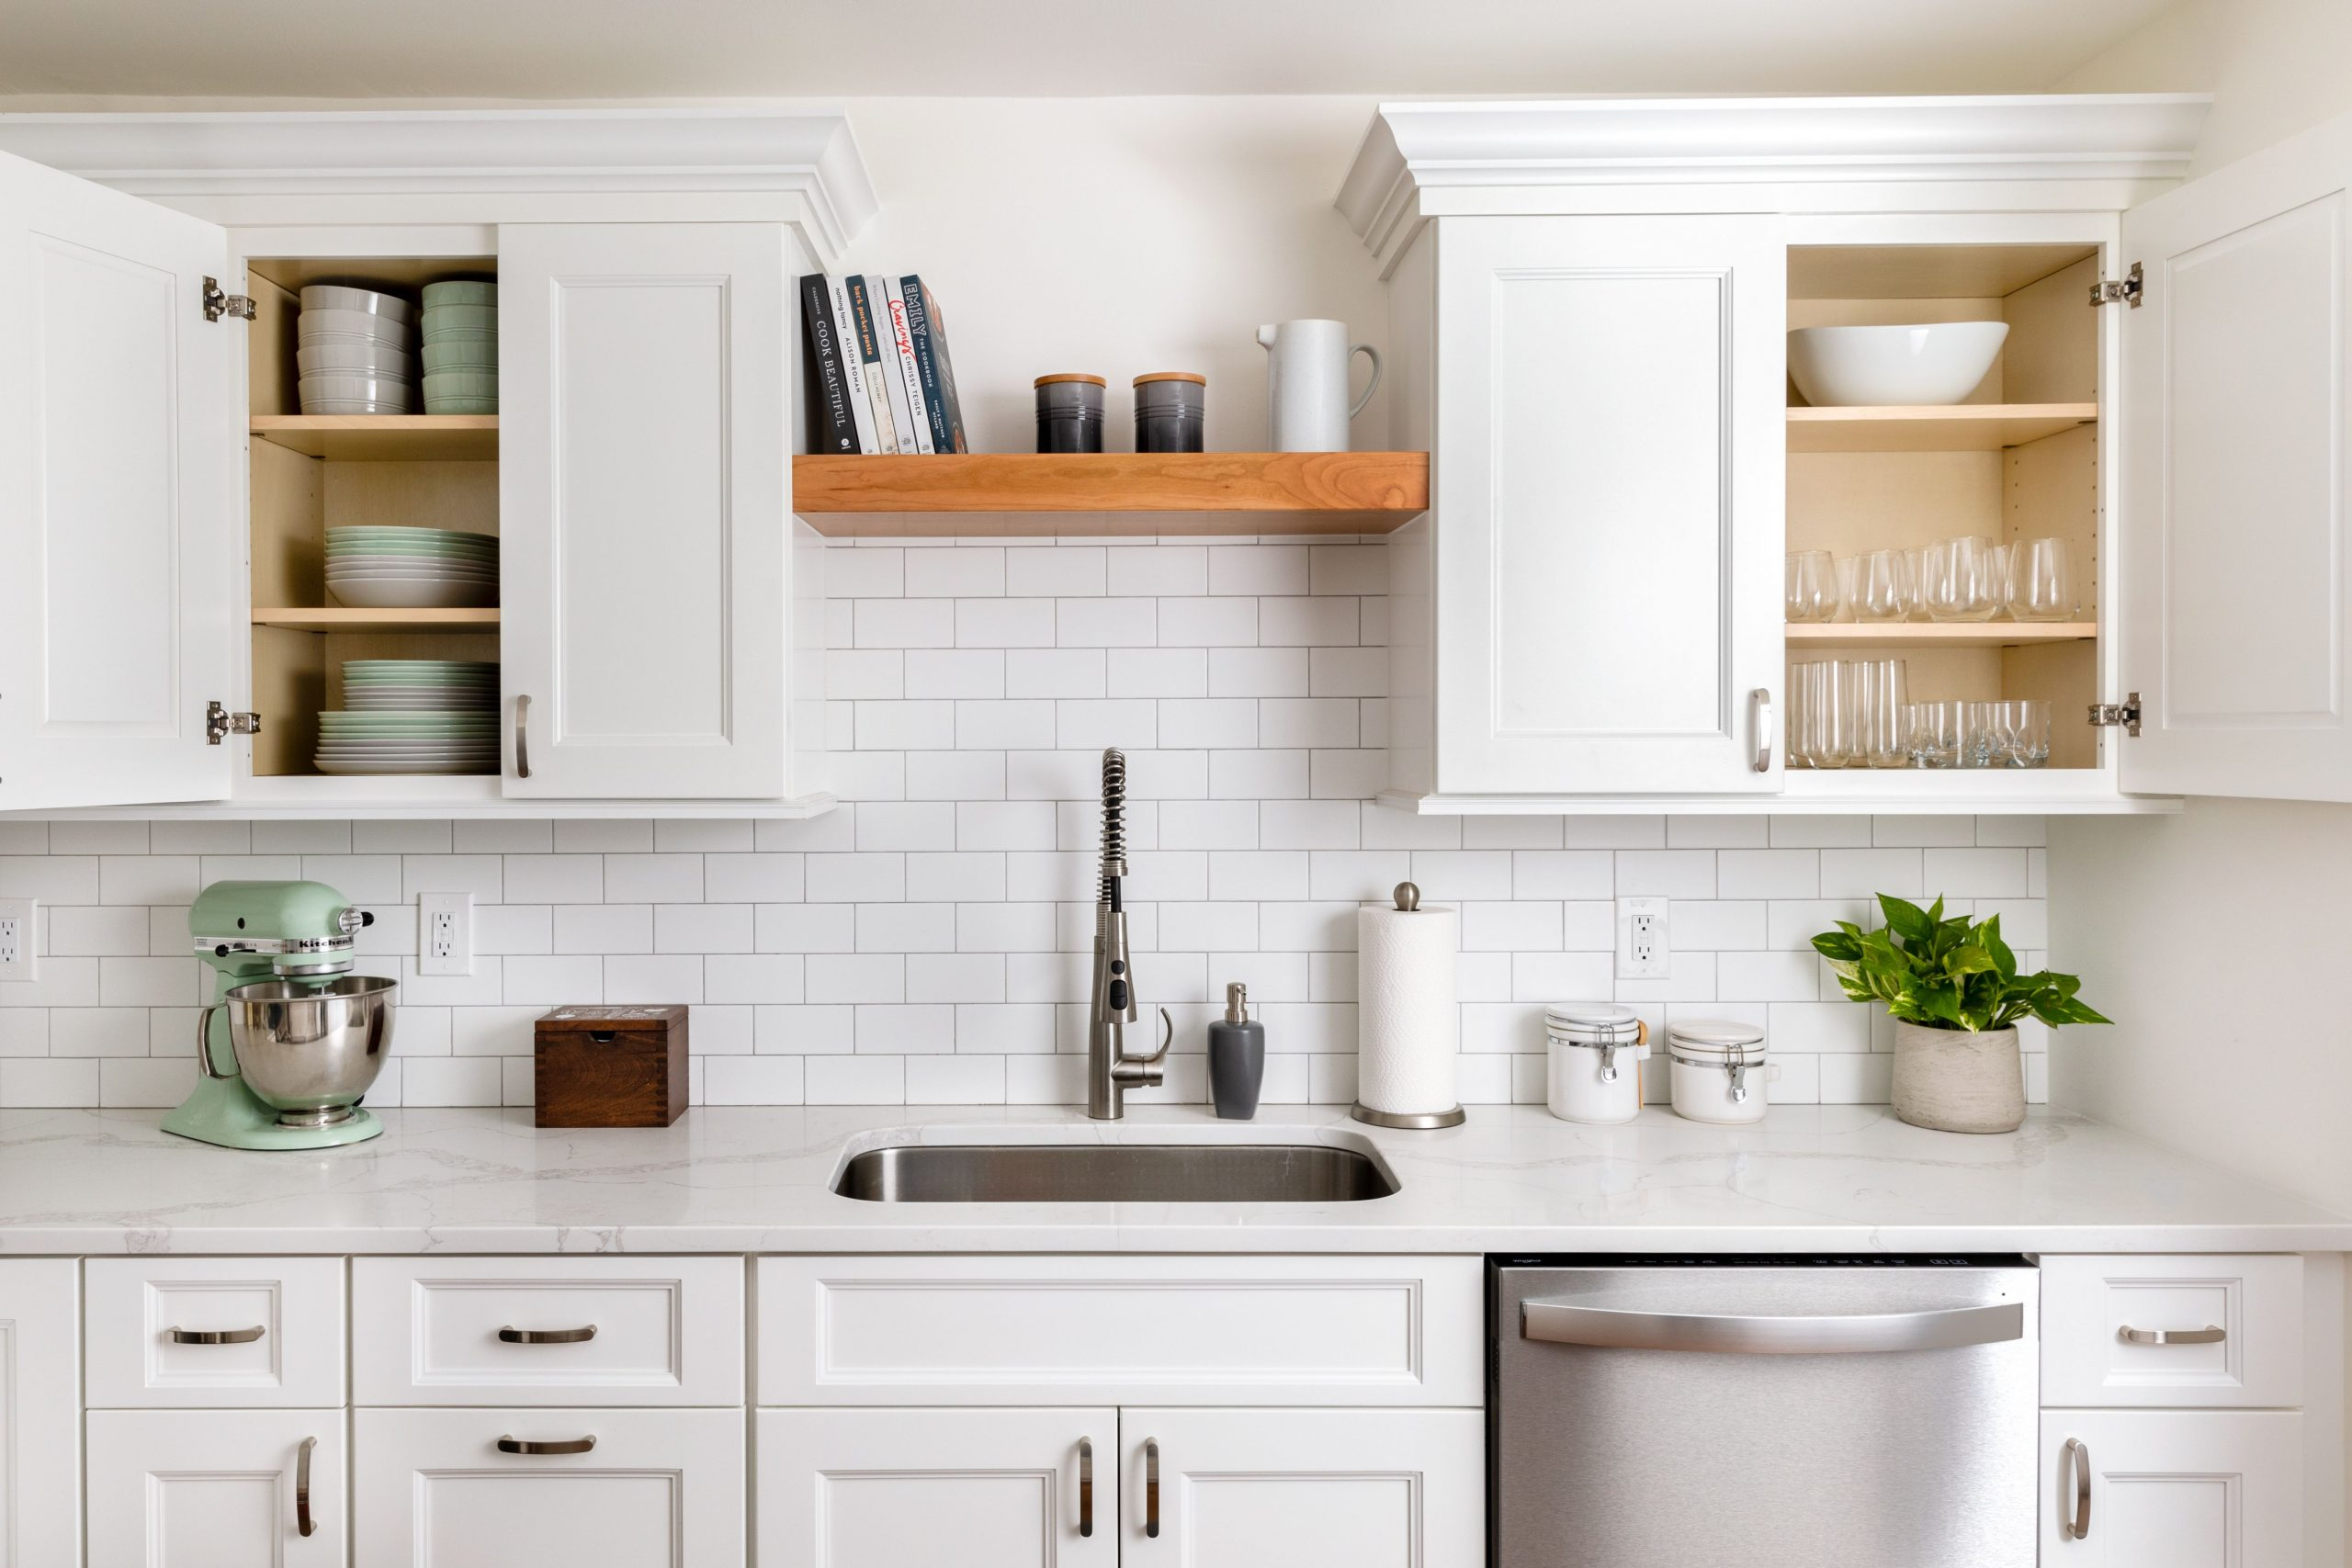 How to Organize Kitchen Cabinets - Help Me Organize My Kitchen Cabinets